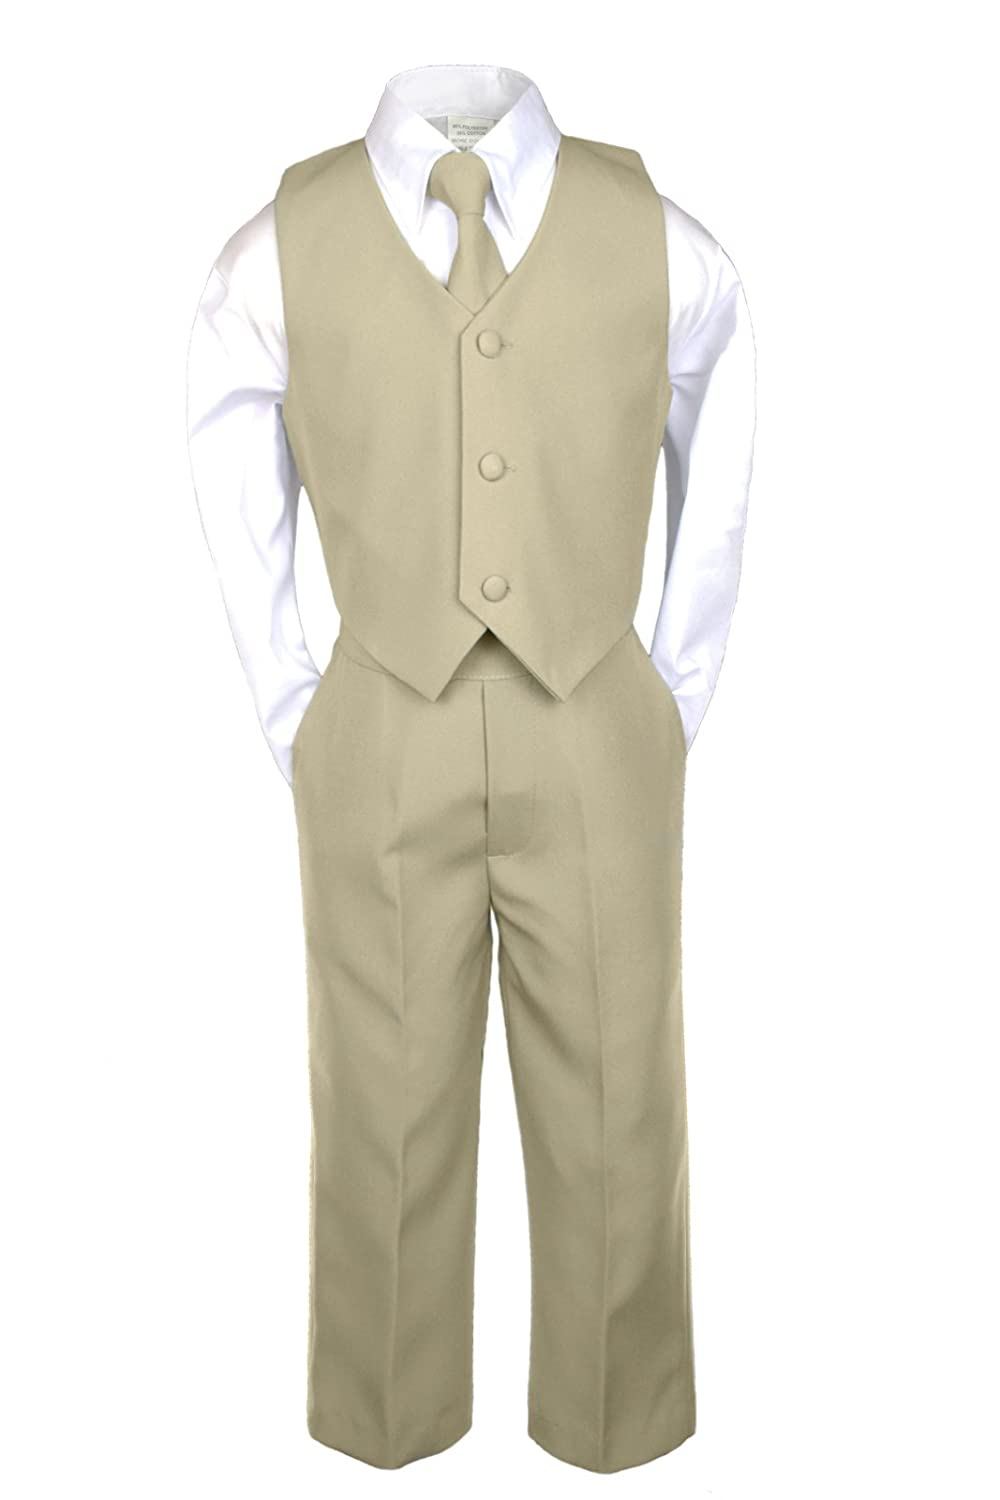 3T Unotux 7pc Boys Khaki Suits with Satin Orange Vest Set Necktie from Baby to Teen